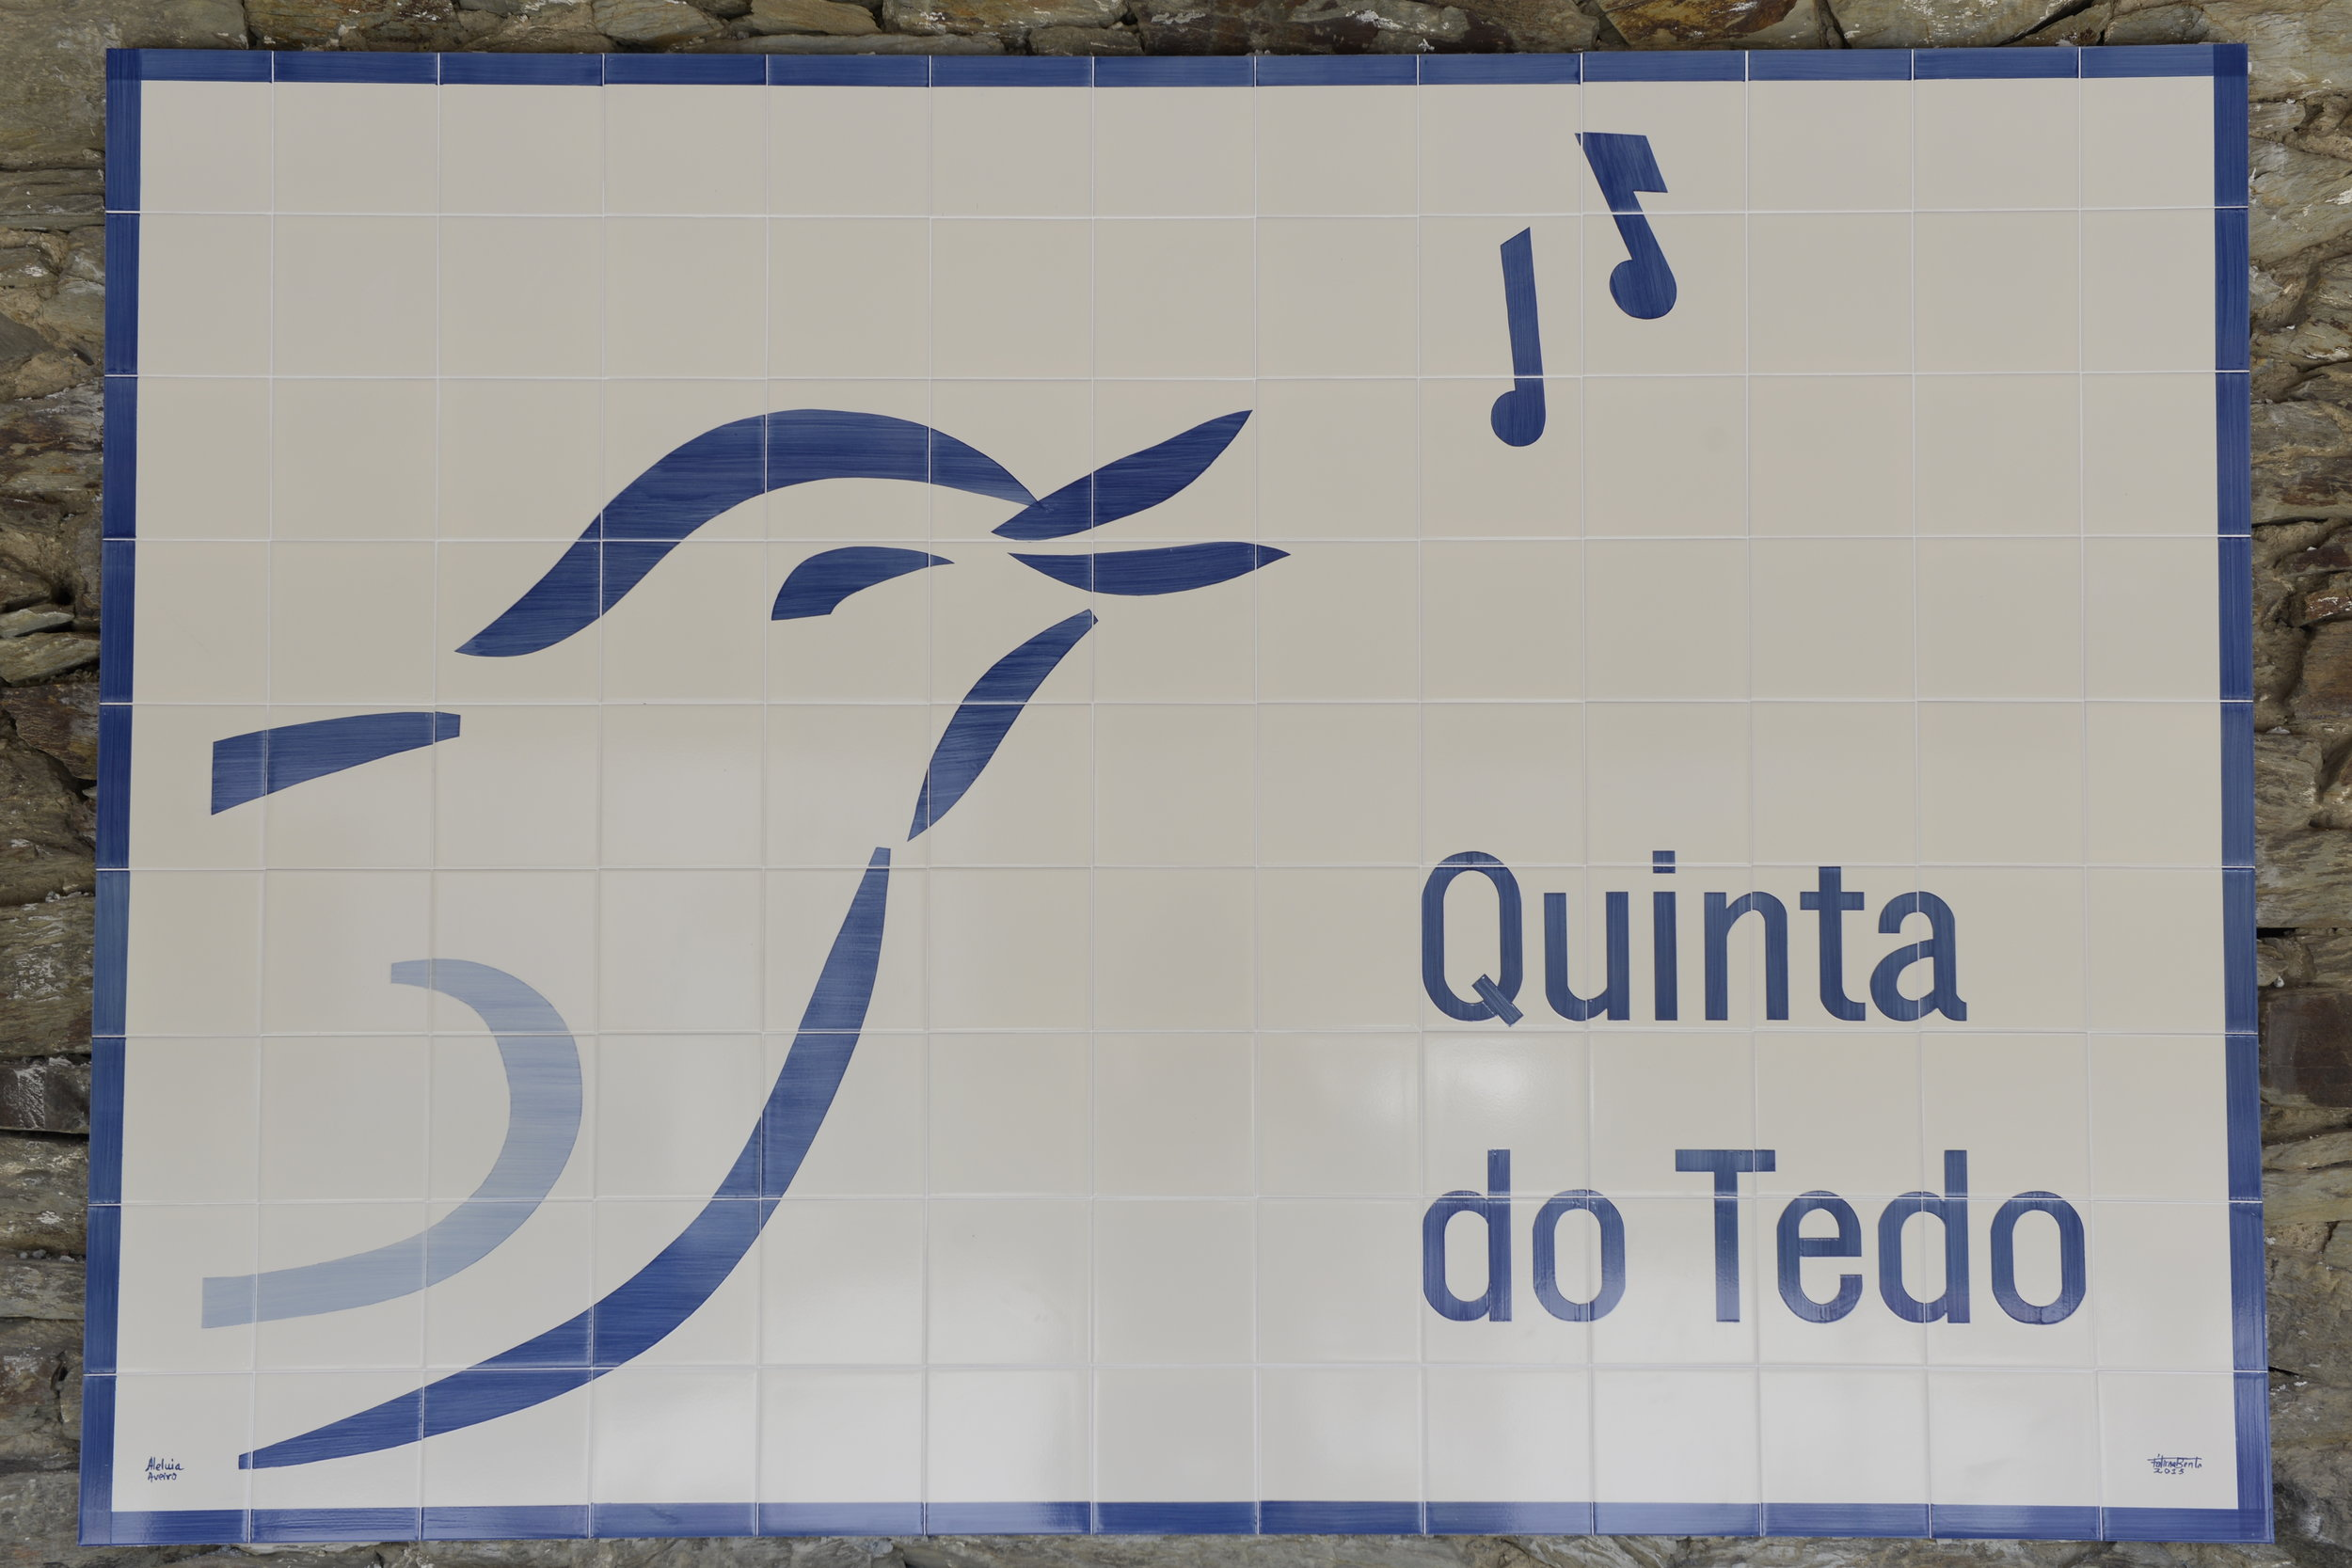 Quinta bird singing loud and clear!